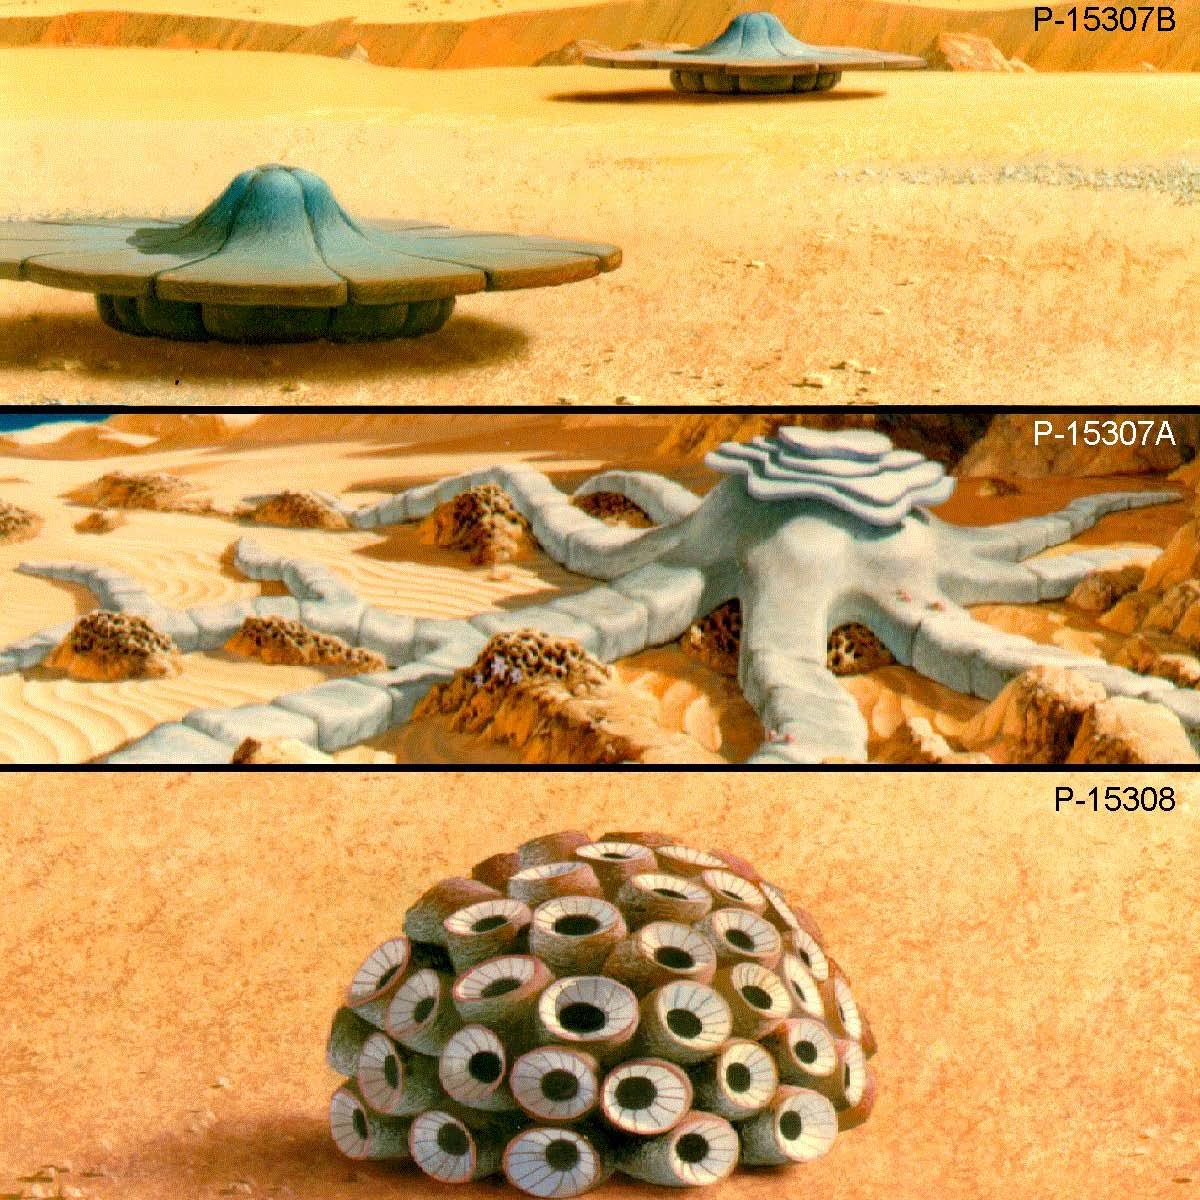 Nasa concept artists, life on Mars 1975